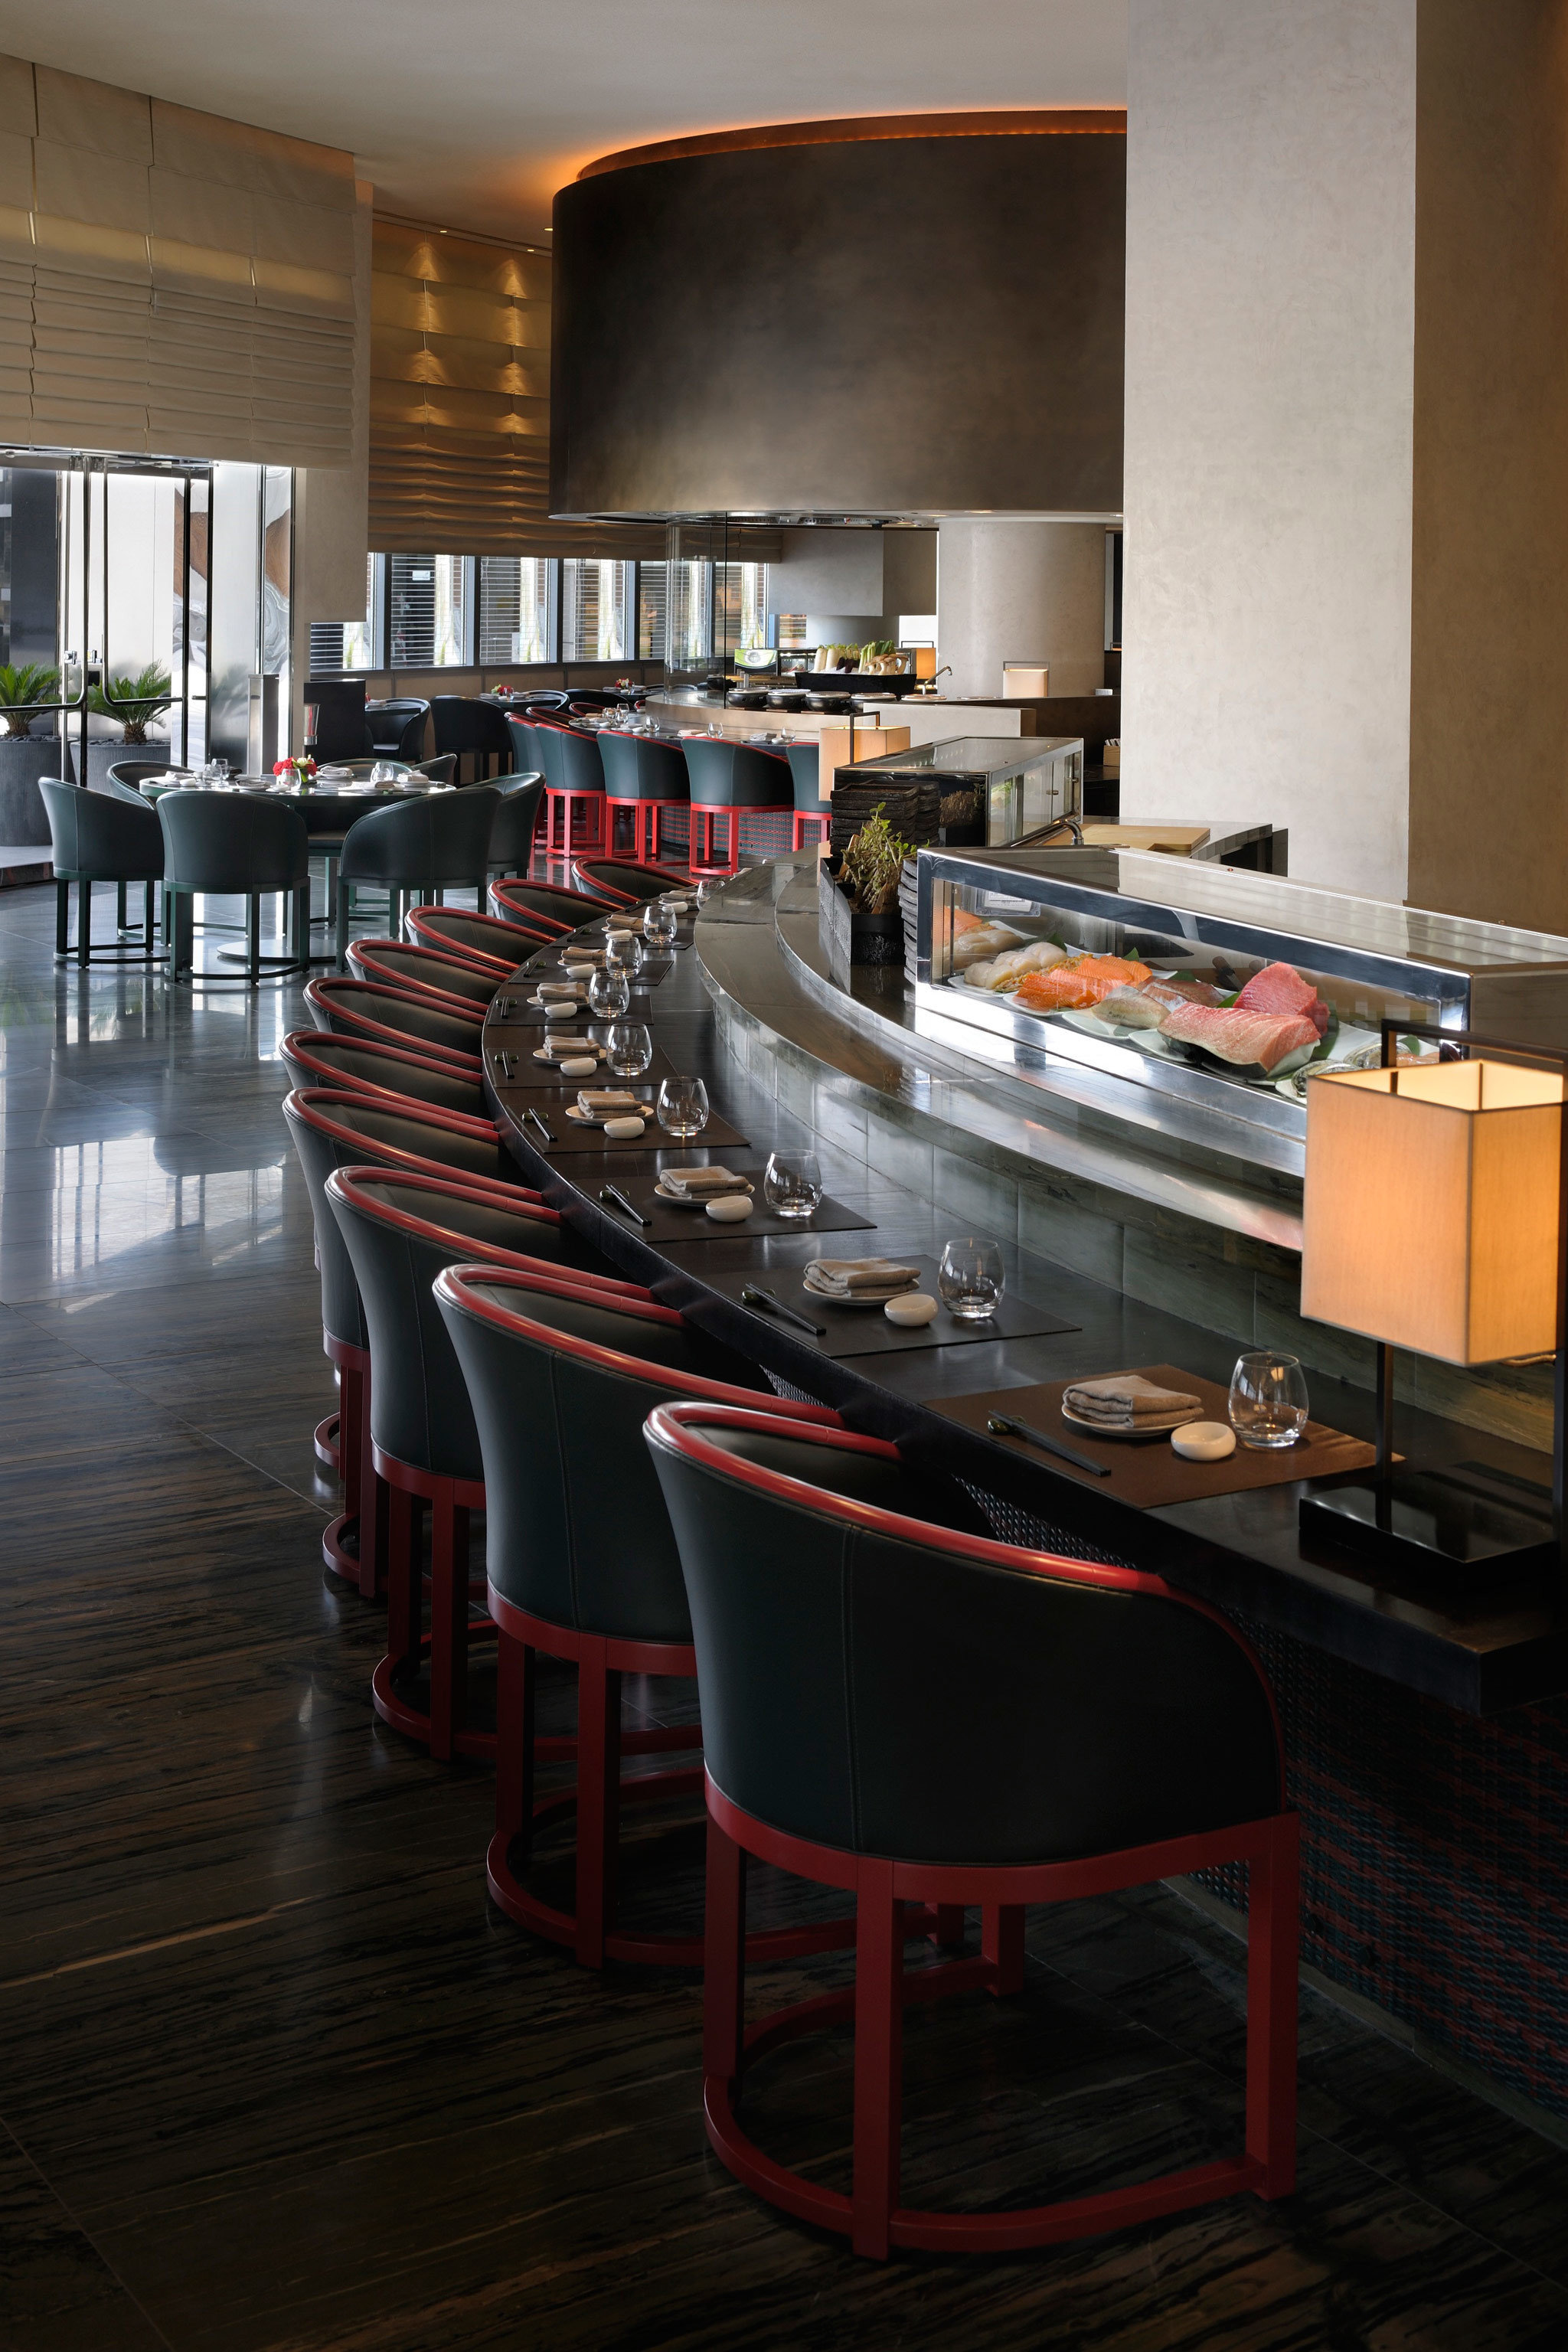 Bar City Dining Drink Dubai Eat Hotels Luxury Travel Middle East Modern indoor wall floor table room restaurant ceiling interior design Kitchen Design cuisine furniture several